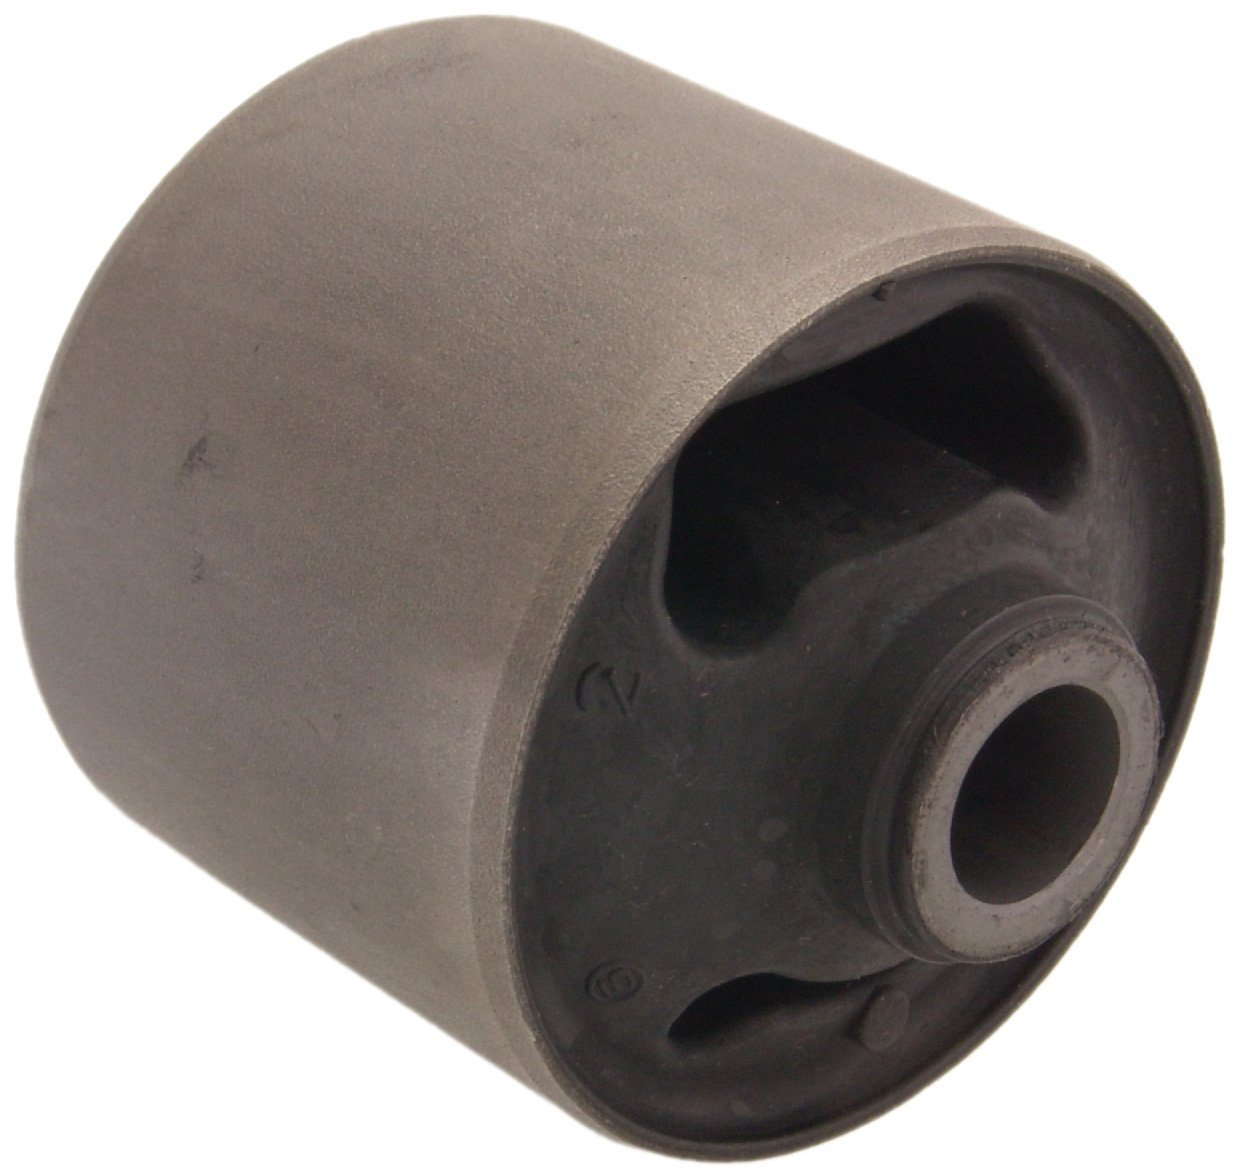 FEBEST MAB-108 Differential Mount Arm Bushing